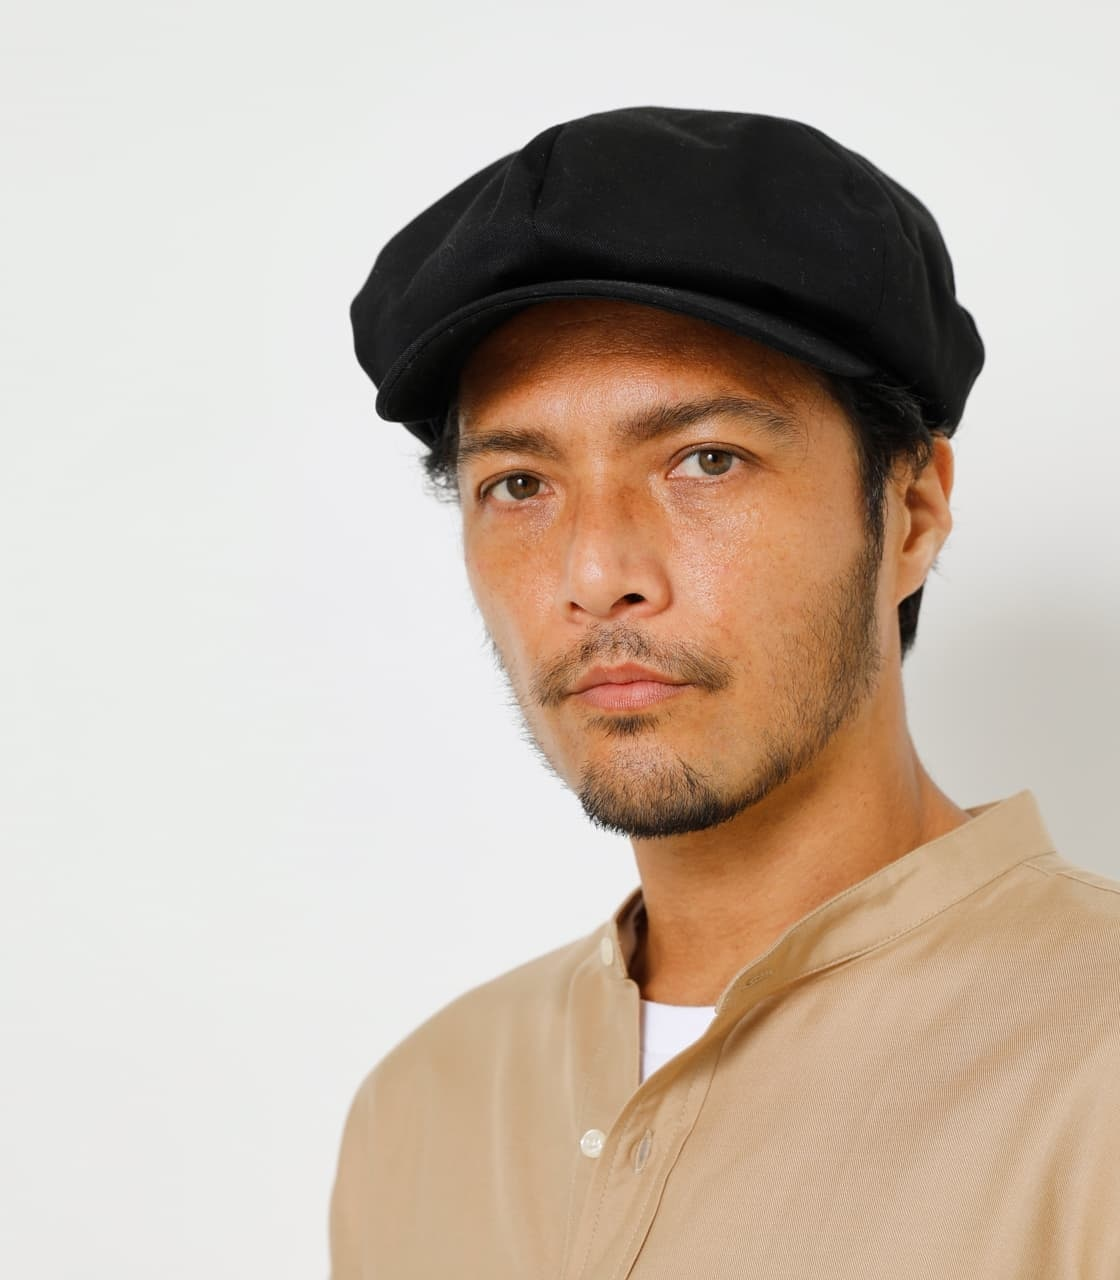 COTTON TWILL CASQUETTE/コットンツイルキャスケット 詳細画像 BLK 2